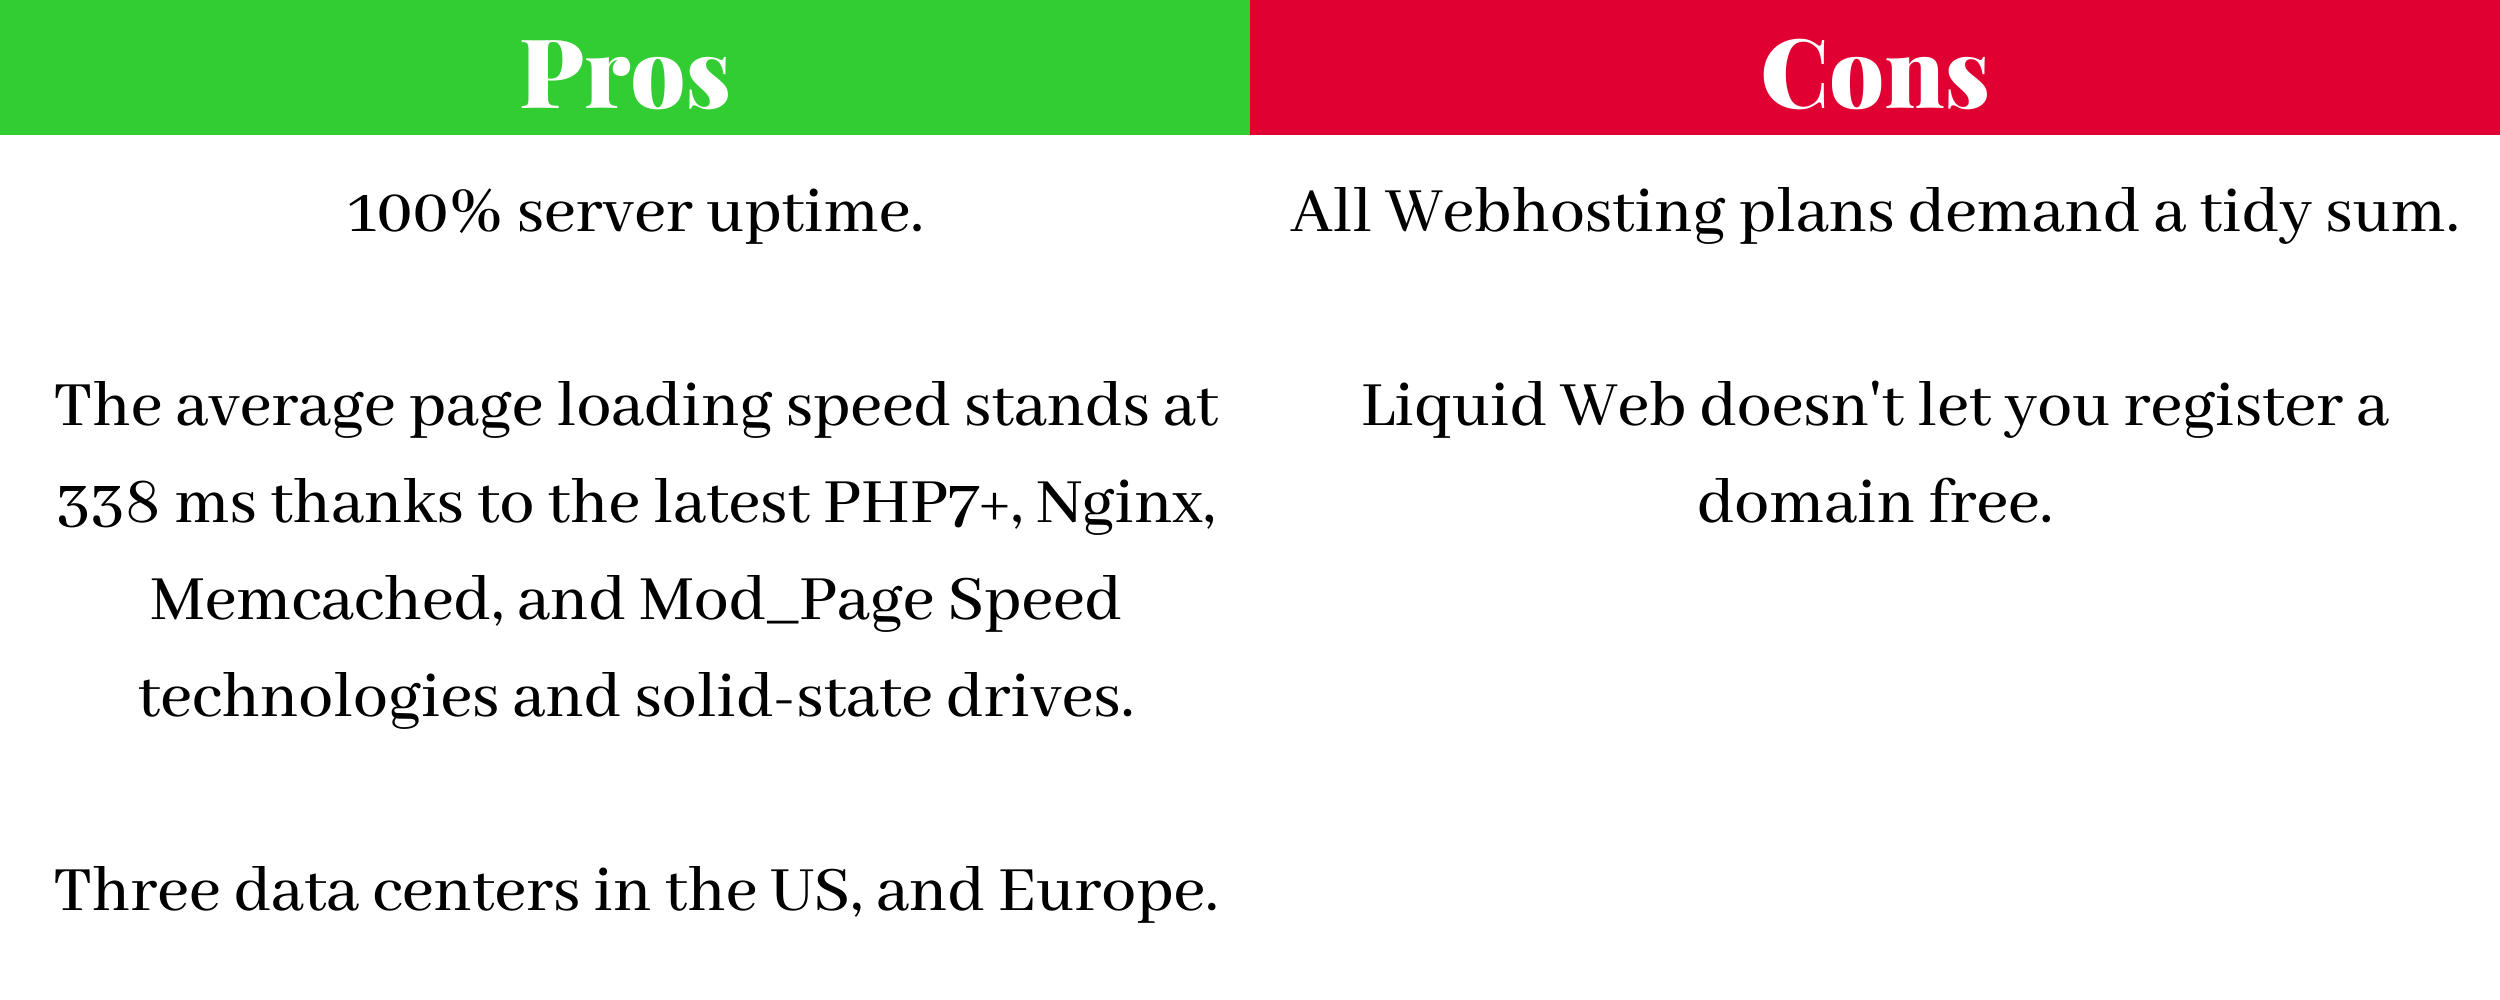 Pros and Cons of Liquid Web